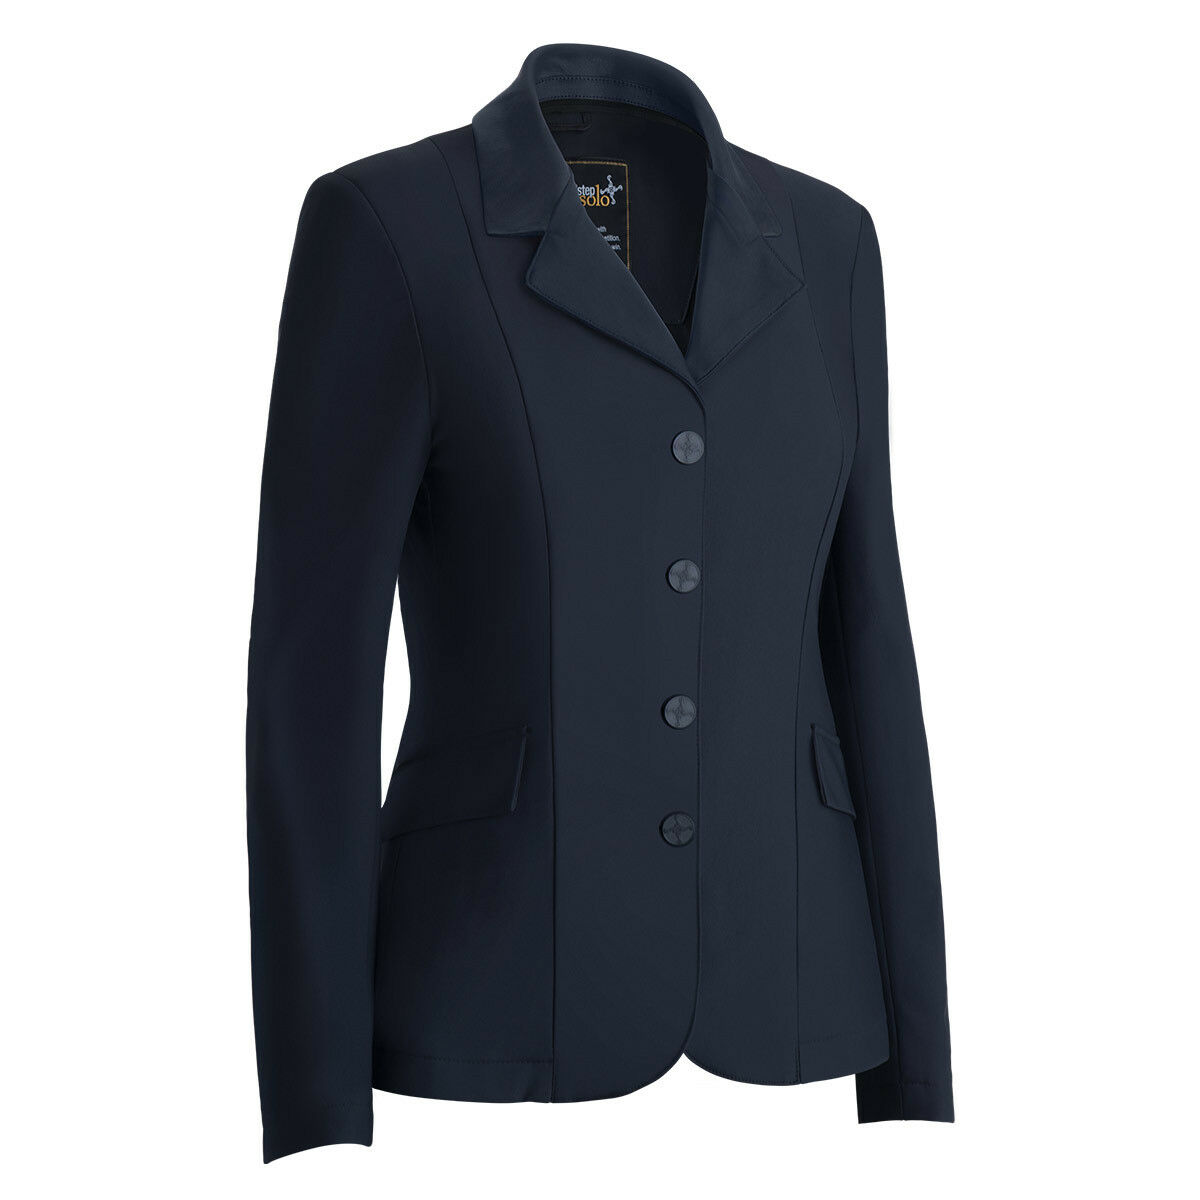 Tredstep Solo Pro Competition Coat in Navy